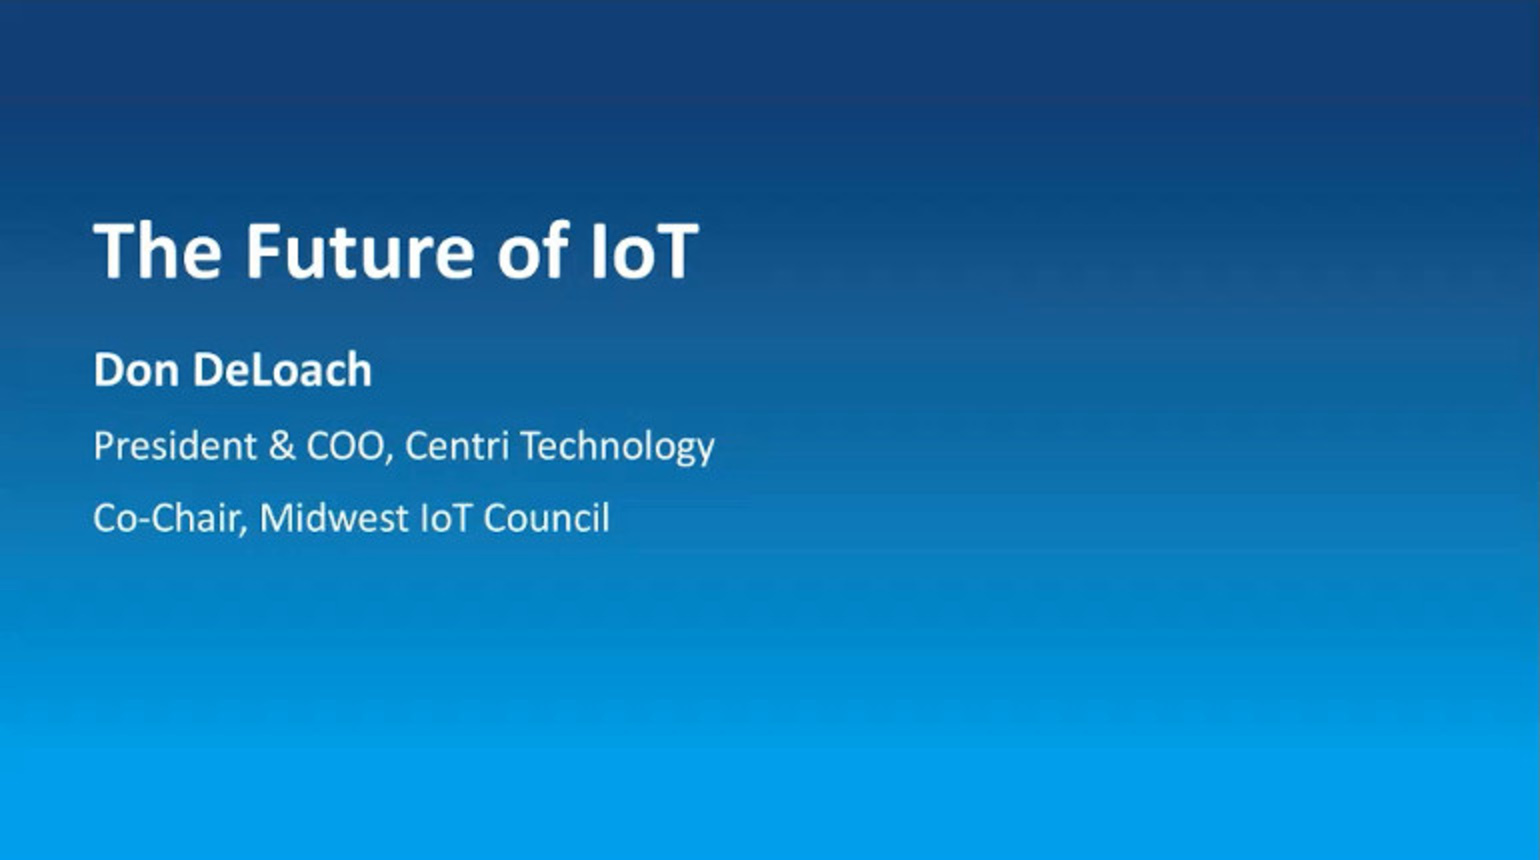 IEEE Future Networks: The Future of IoT